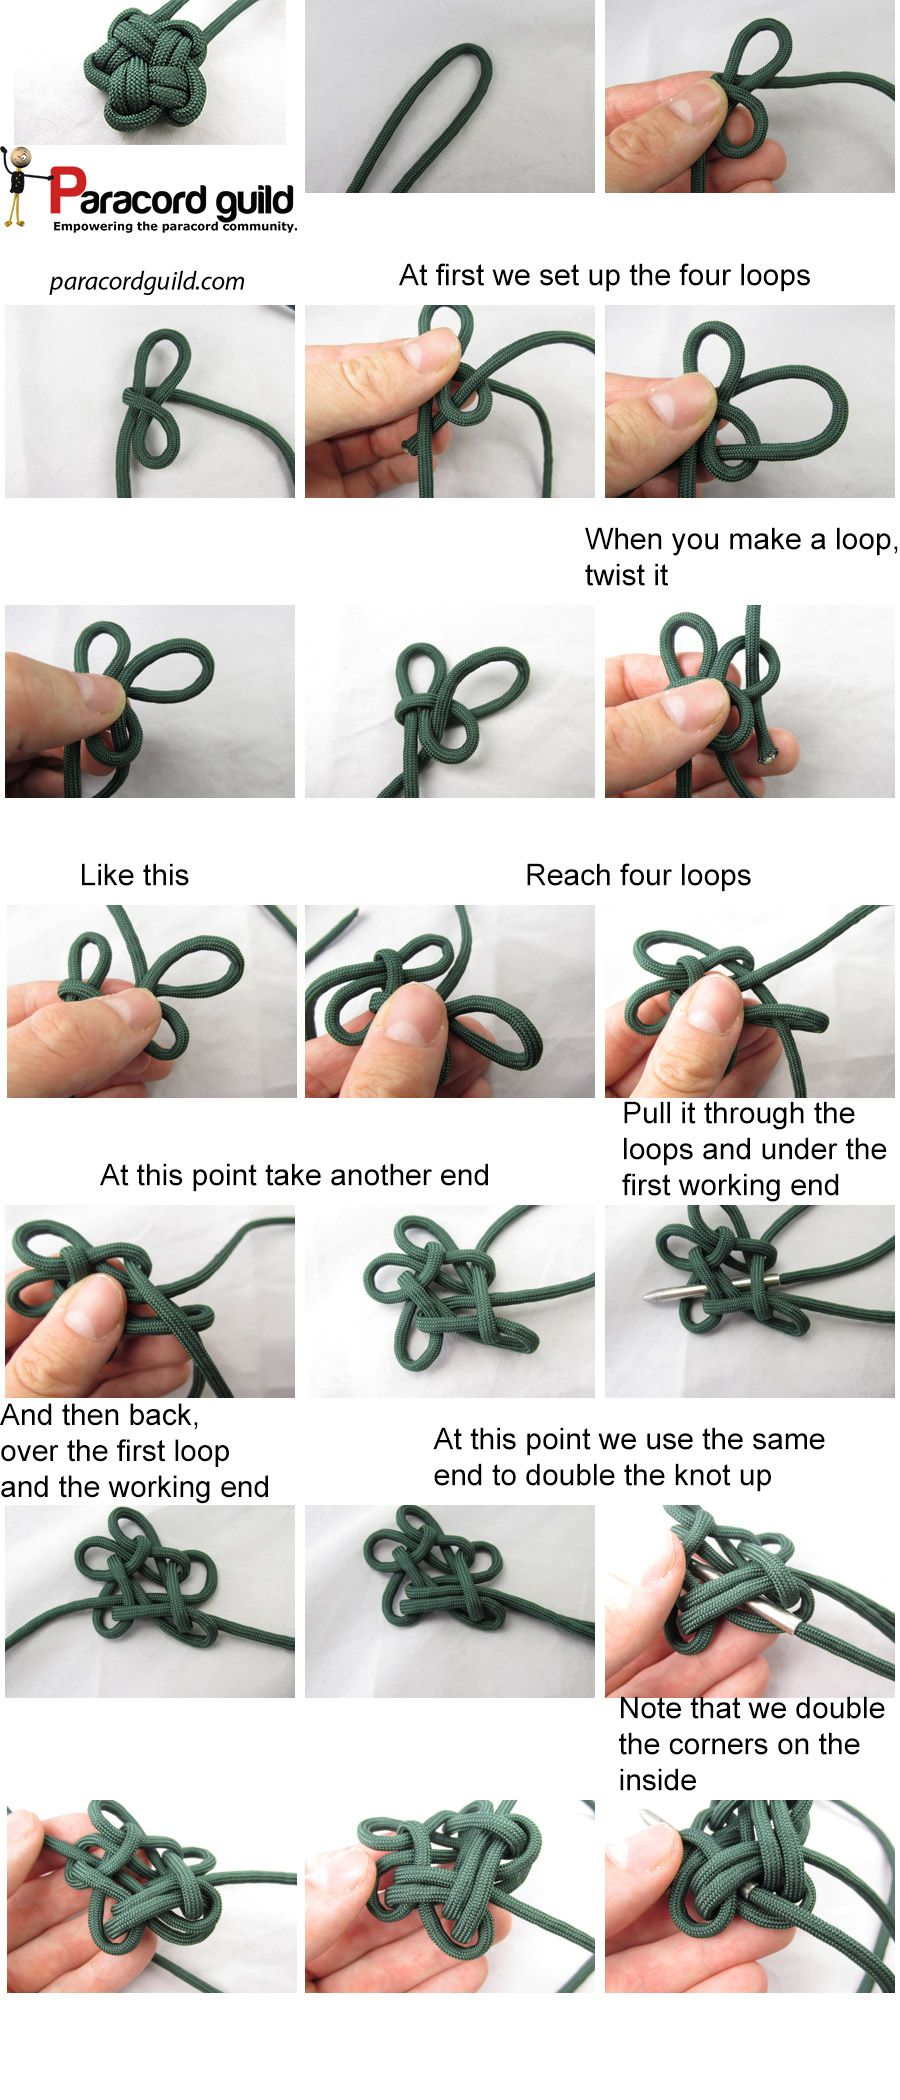 How to tie a star knot paracord guild knots knots by andrew how to tie a star knot paracord guild ccuart Image collections